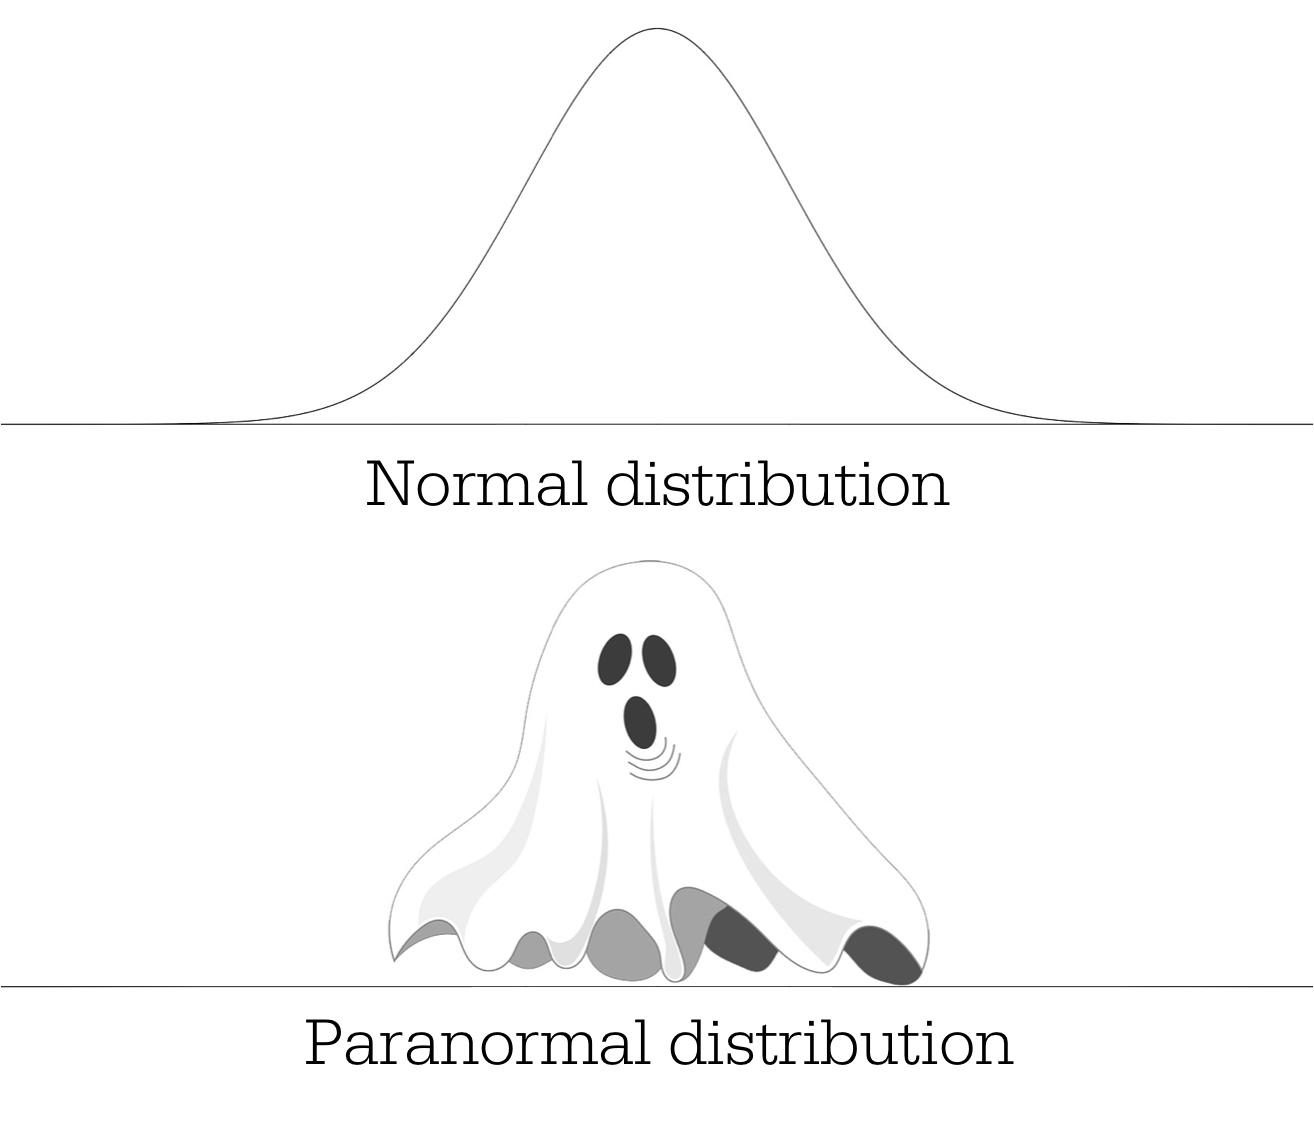 Paranormal distribution